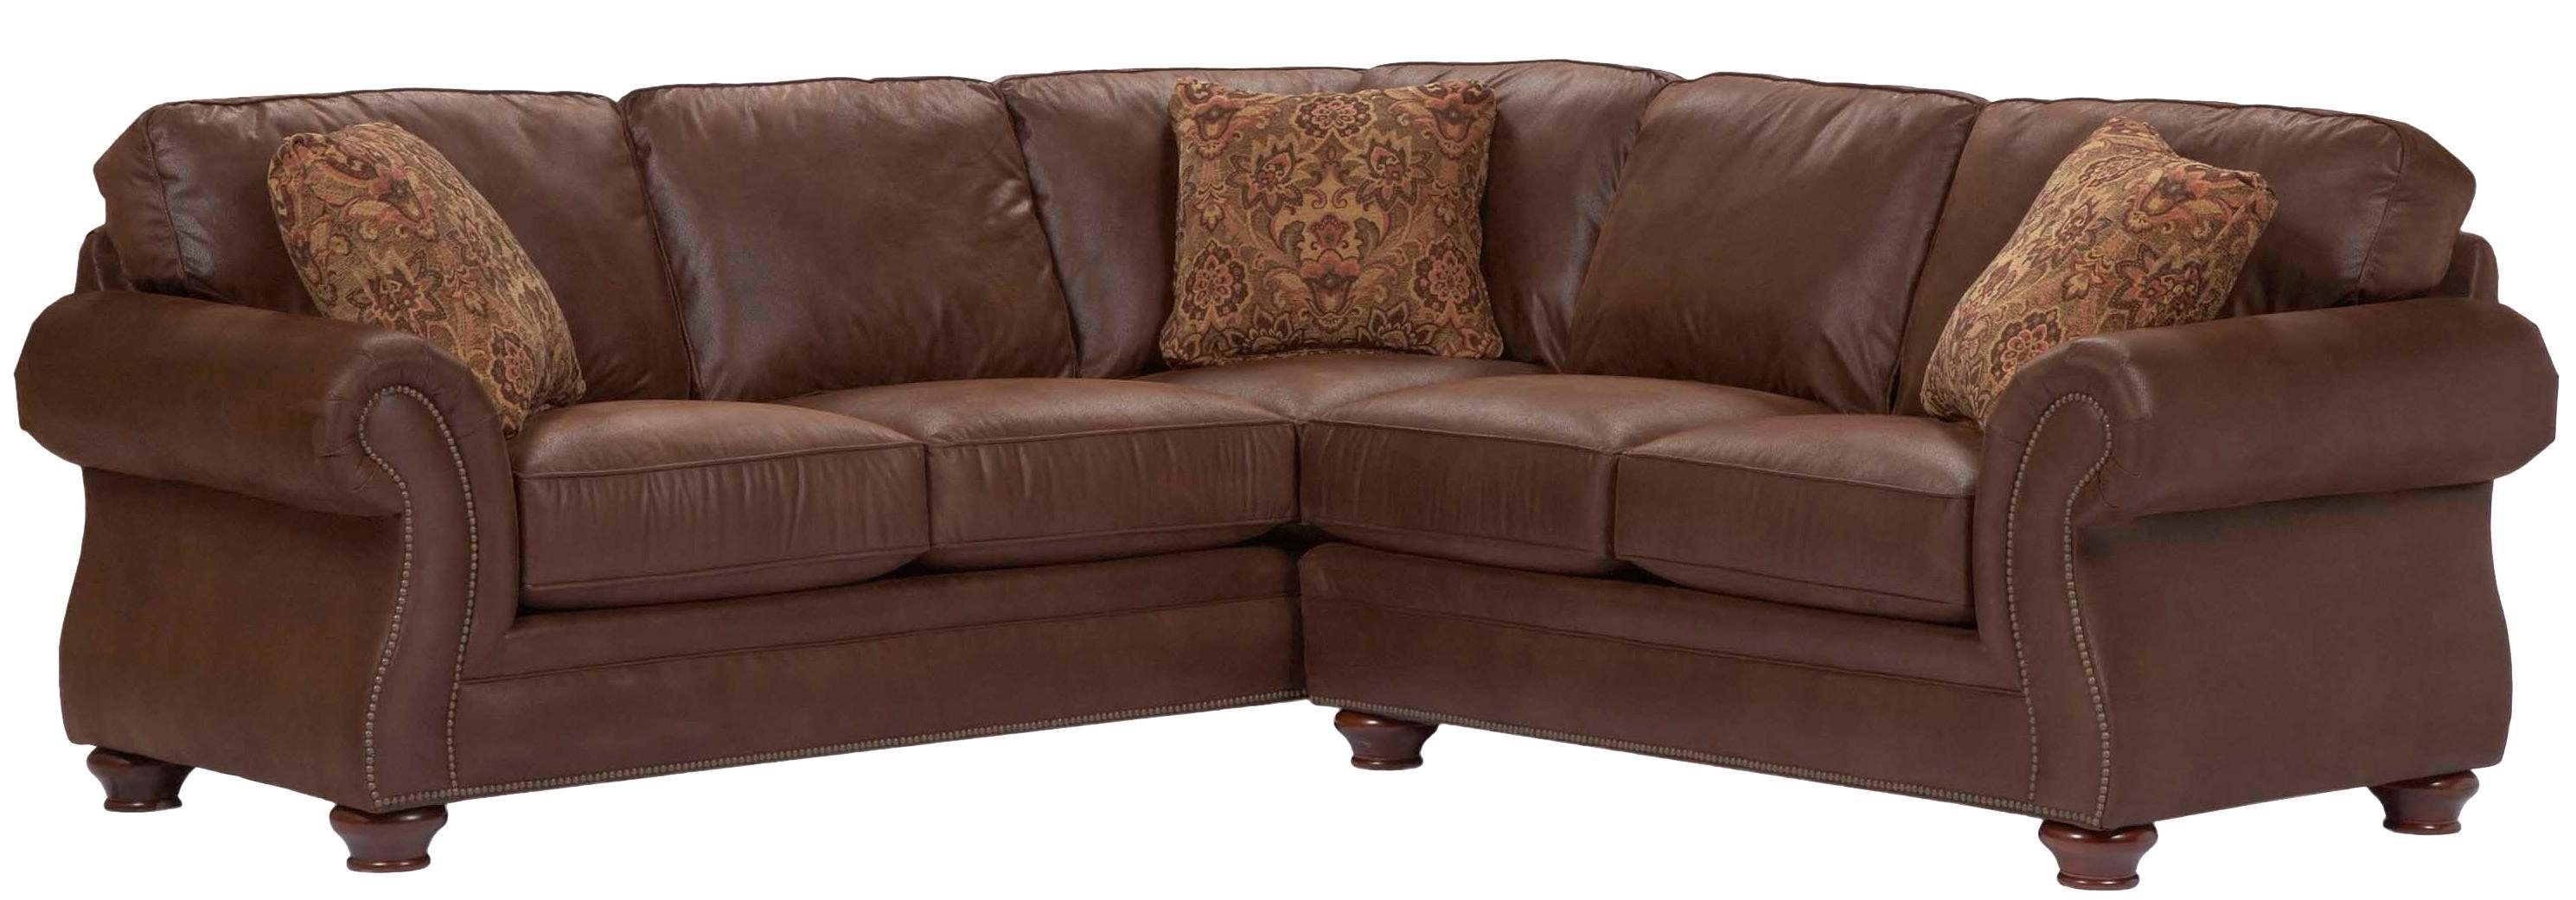 Broyhill Furniture Laramie 2 Piece Corner Sectional Sofa – Ahfa Intended For Roanoke Va Sectional Sofas (Image 2 of 10)